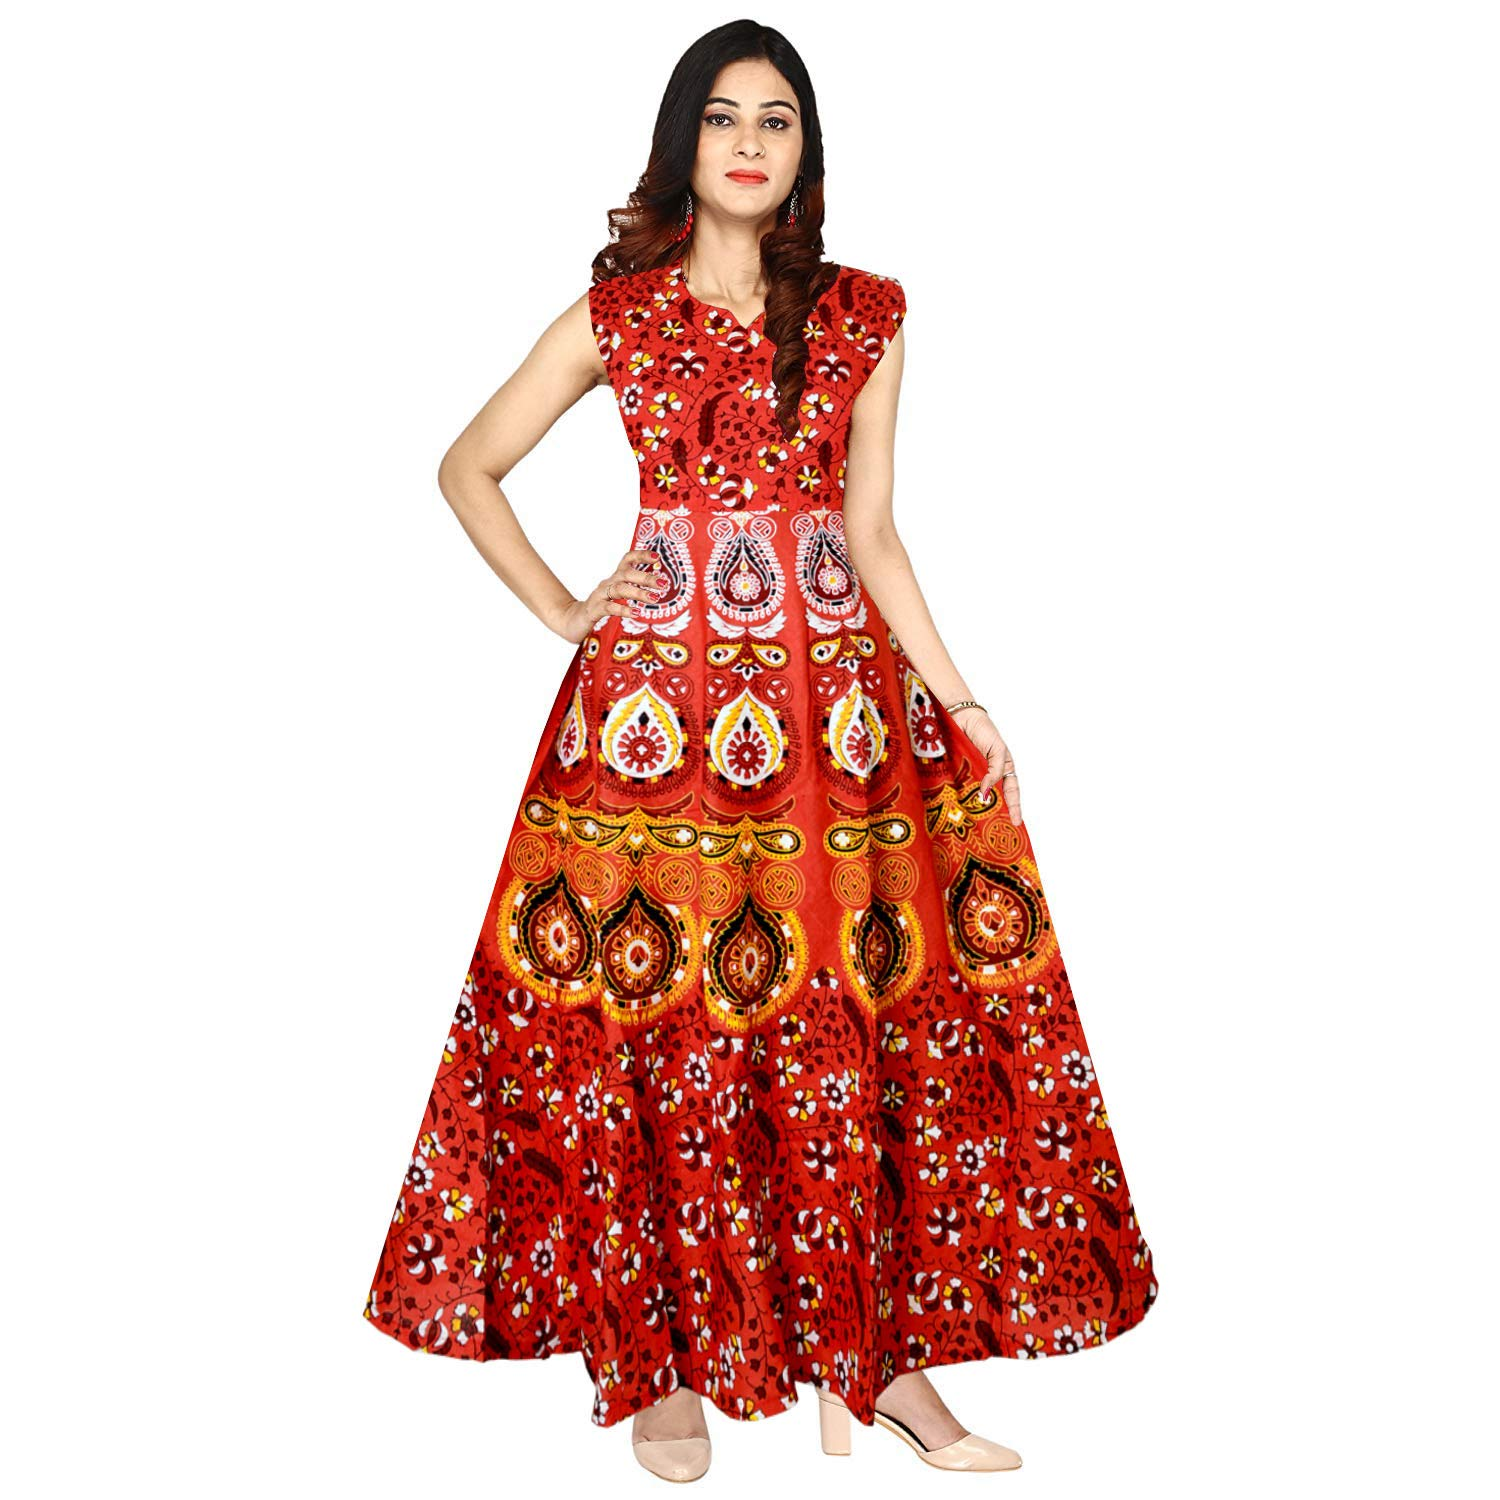 14a20f02a19 Silver Organisation Women s Cotton Traditional Jaipuri Print One Piece Hand  Made Midi Dress (Silver)  Amazon.in  Clothing   Accessories